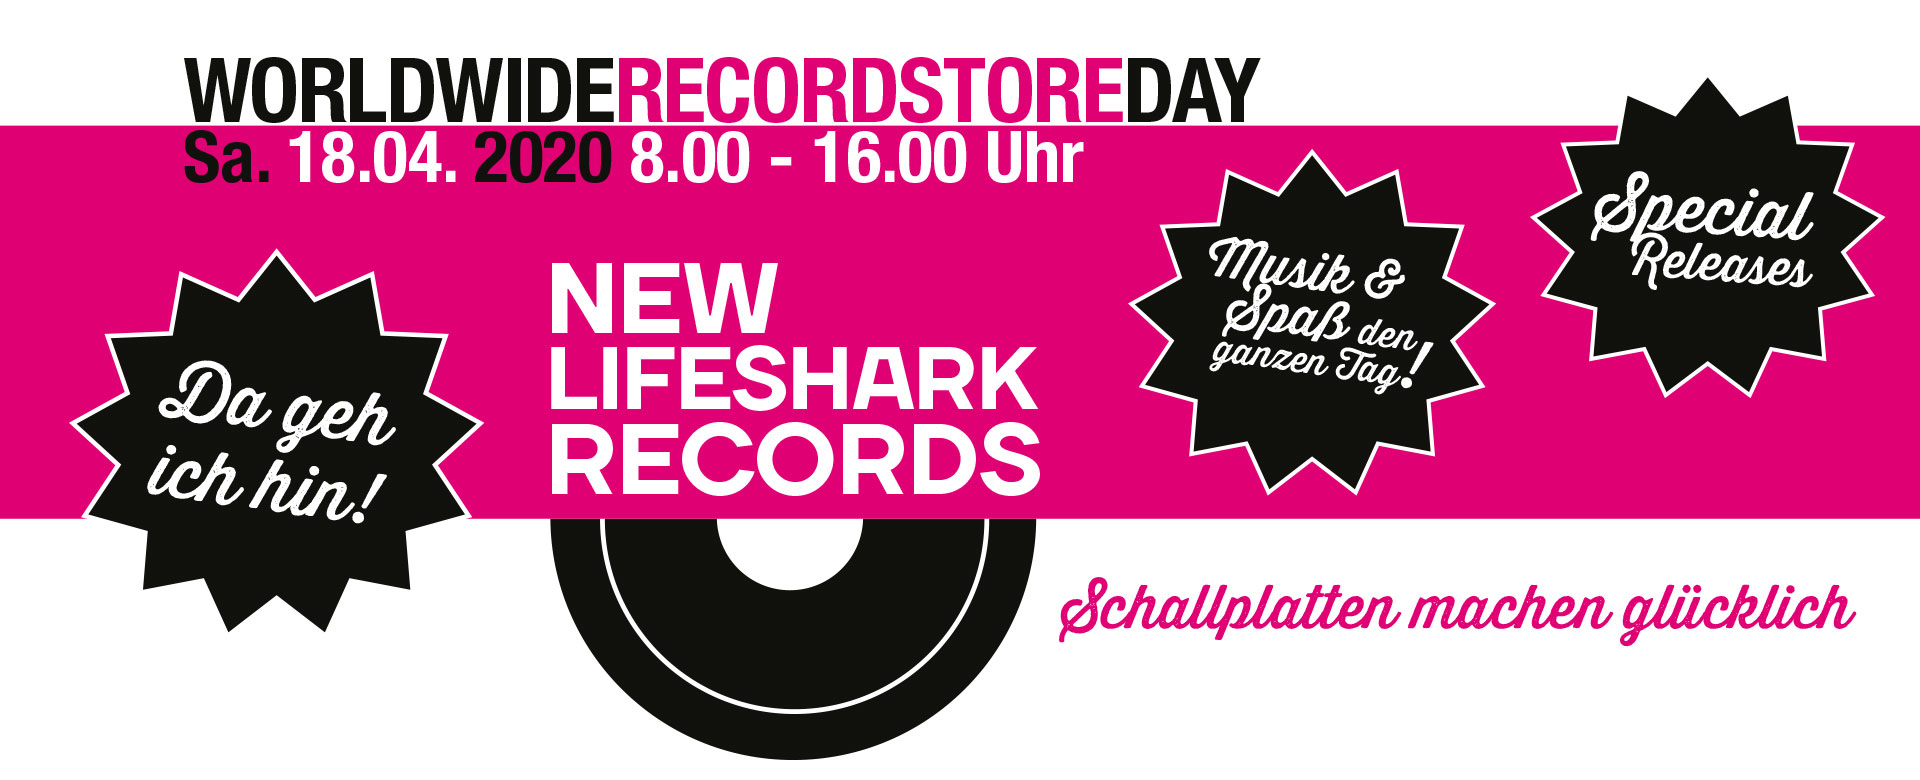 New Lifeshark Records Essen - Recordstoreday 2020